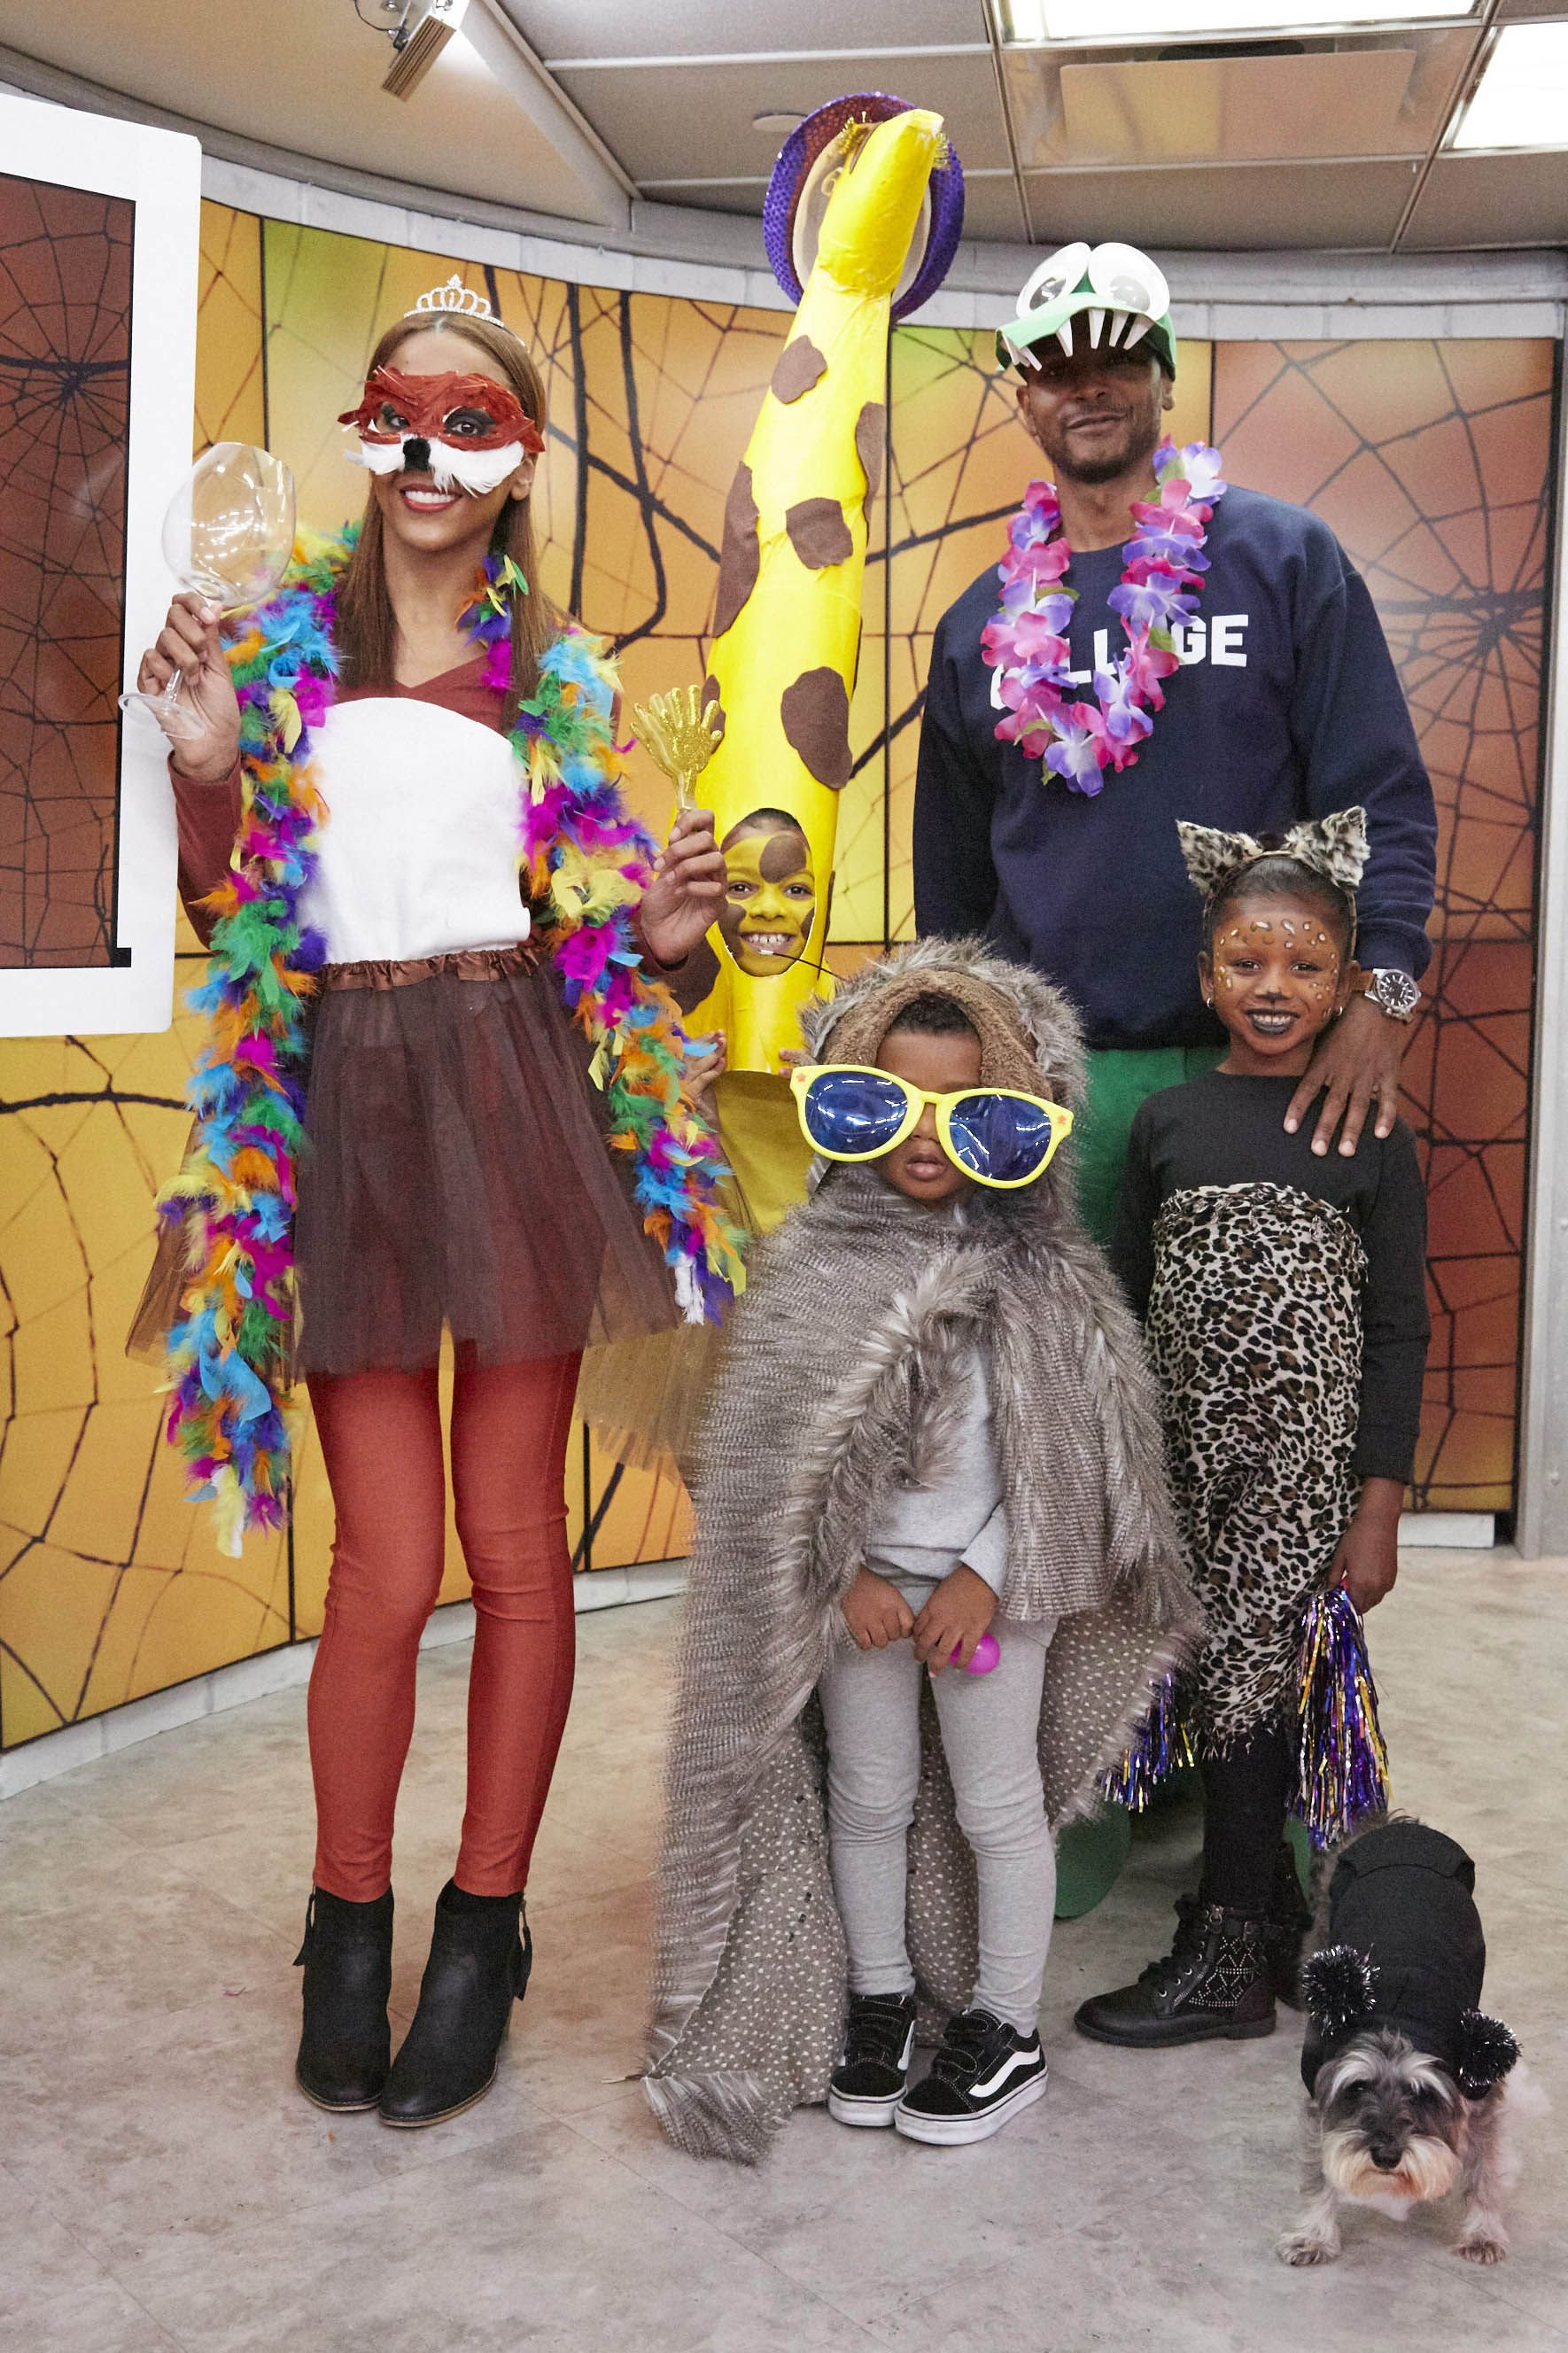 4905adbe8750 21 Group Halloween Costumes for Family - Halloween Costume Ideas for Groups  of Friends